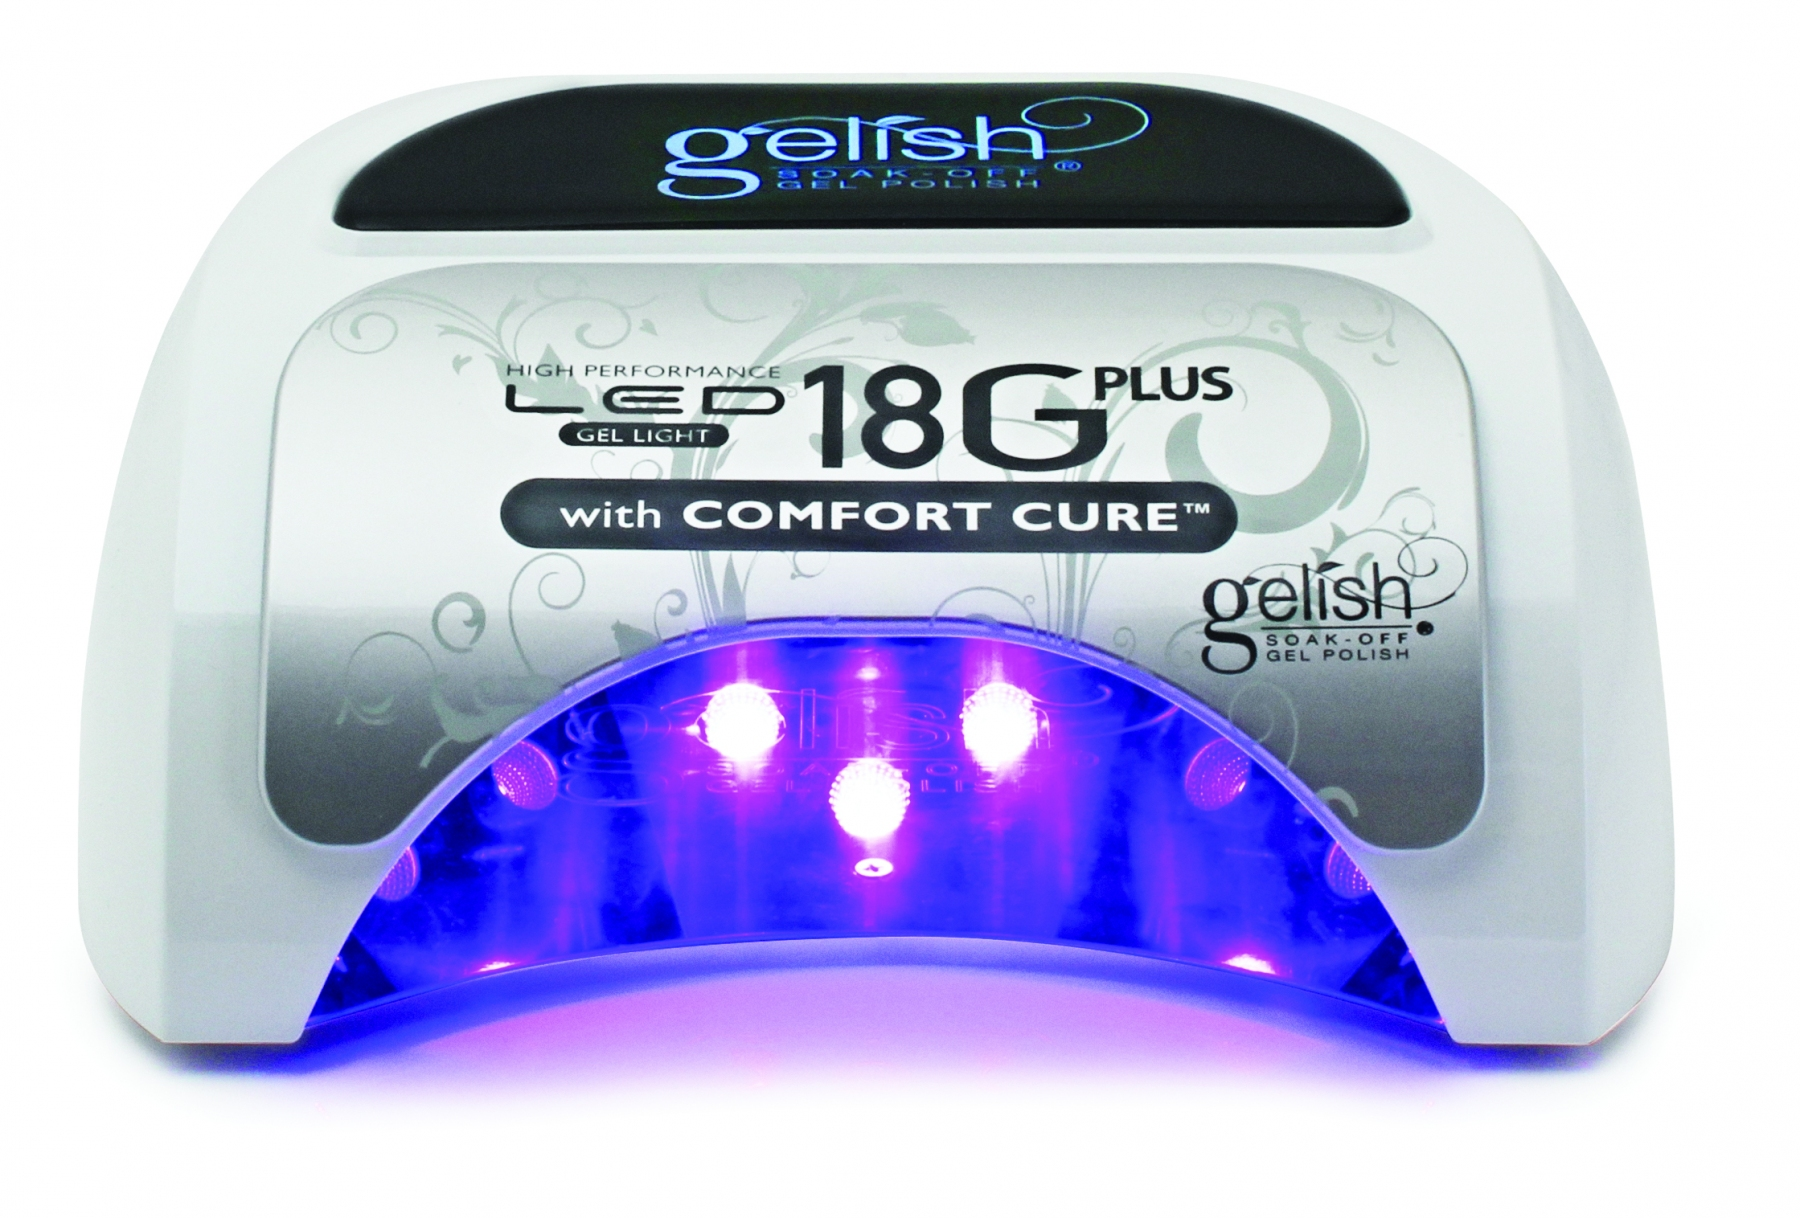 18G Plus LED Lamp with Comfort Cure